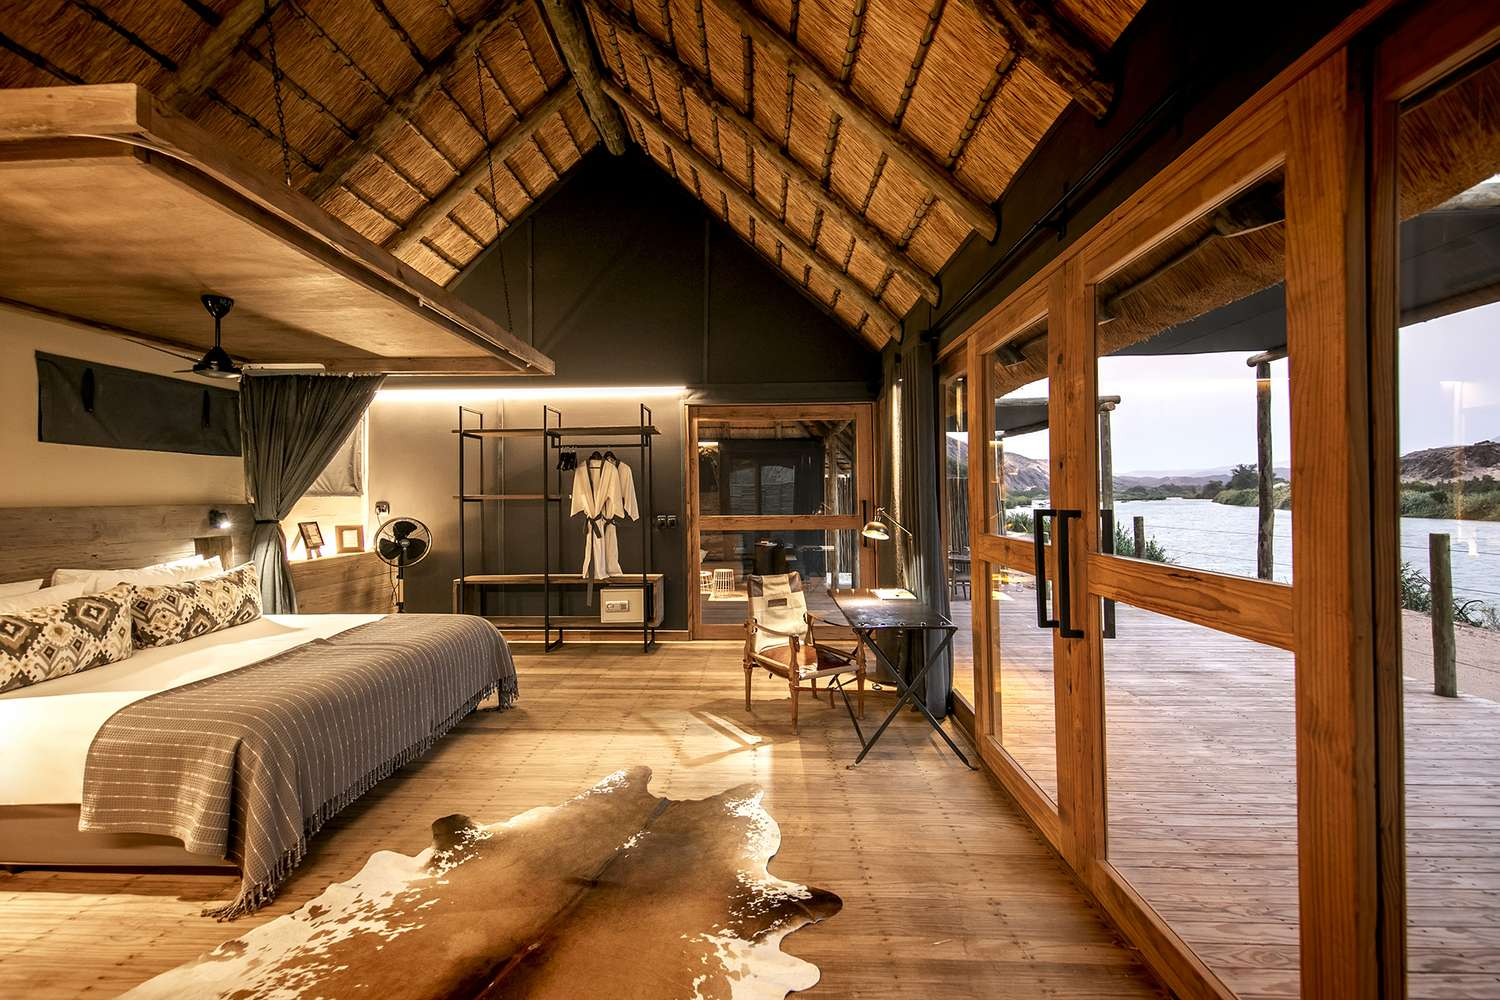 Top 10 Safari Lodges und Camps in Afrika